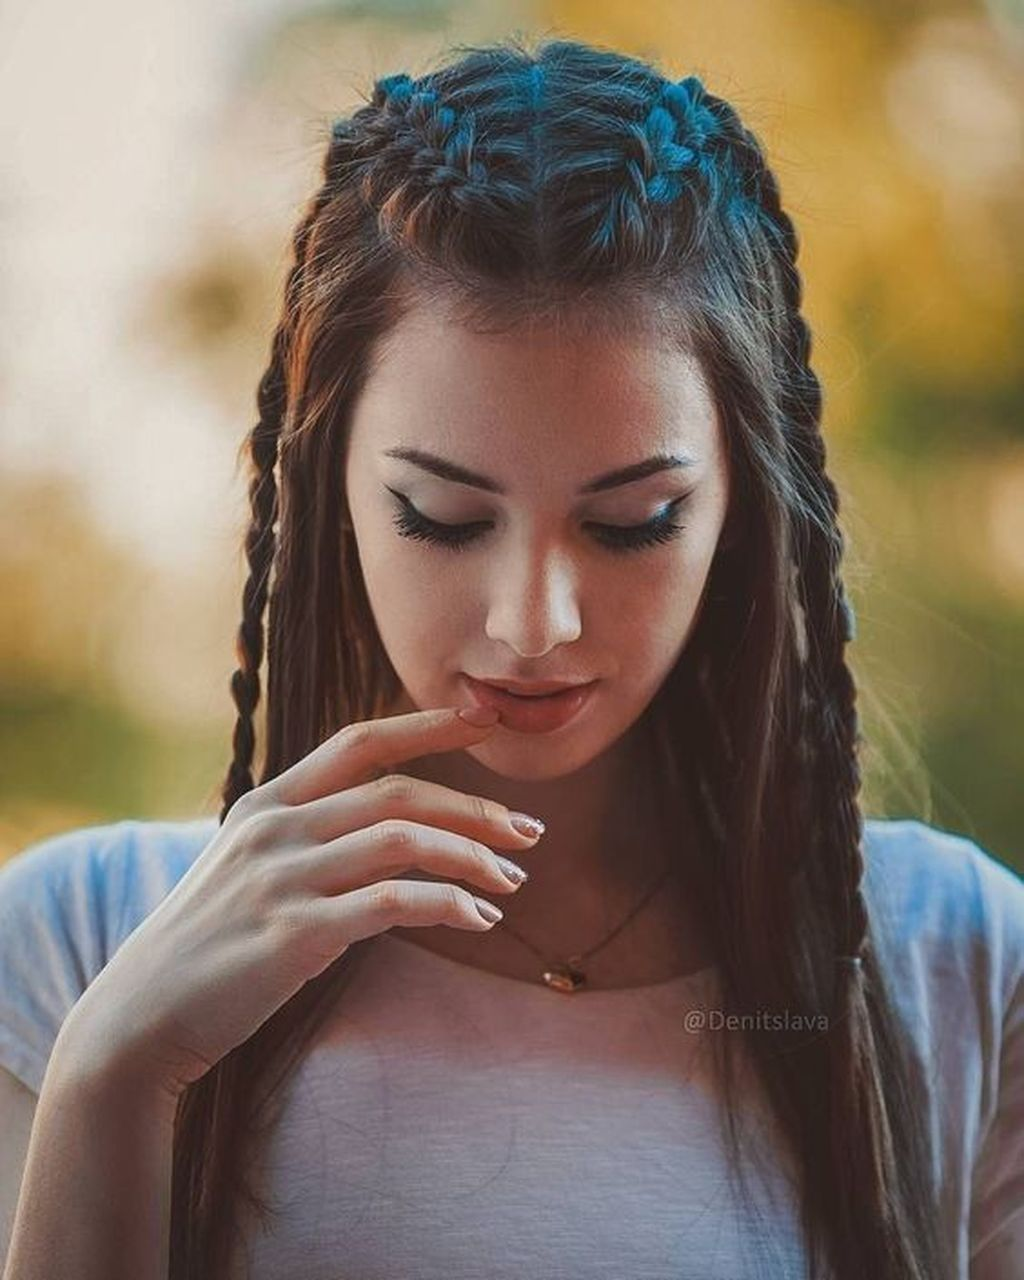 45 Fabulous Braid Hairstyle Ideas For Girls Nowadays #hairstyle